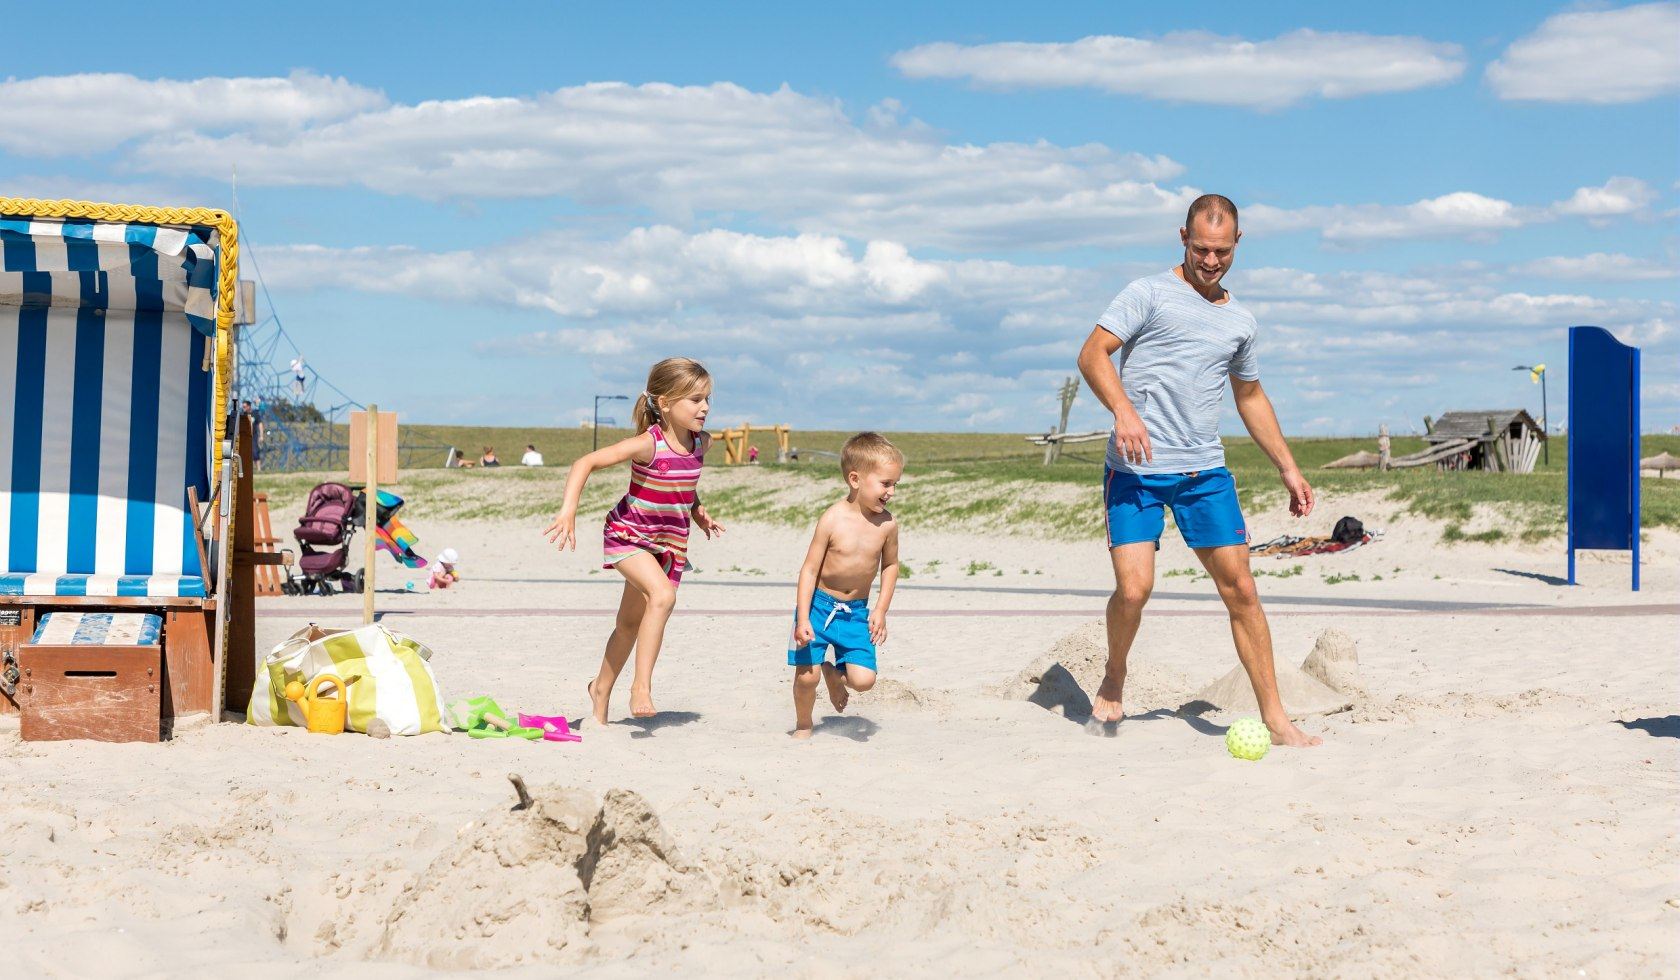 Father with a boy and a girl at the beach playing football